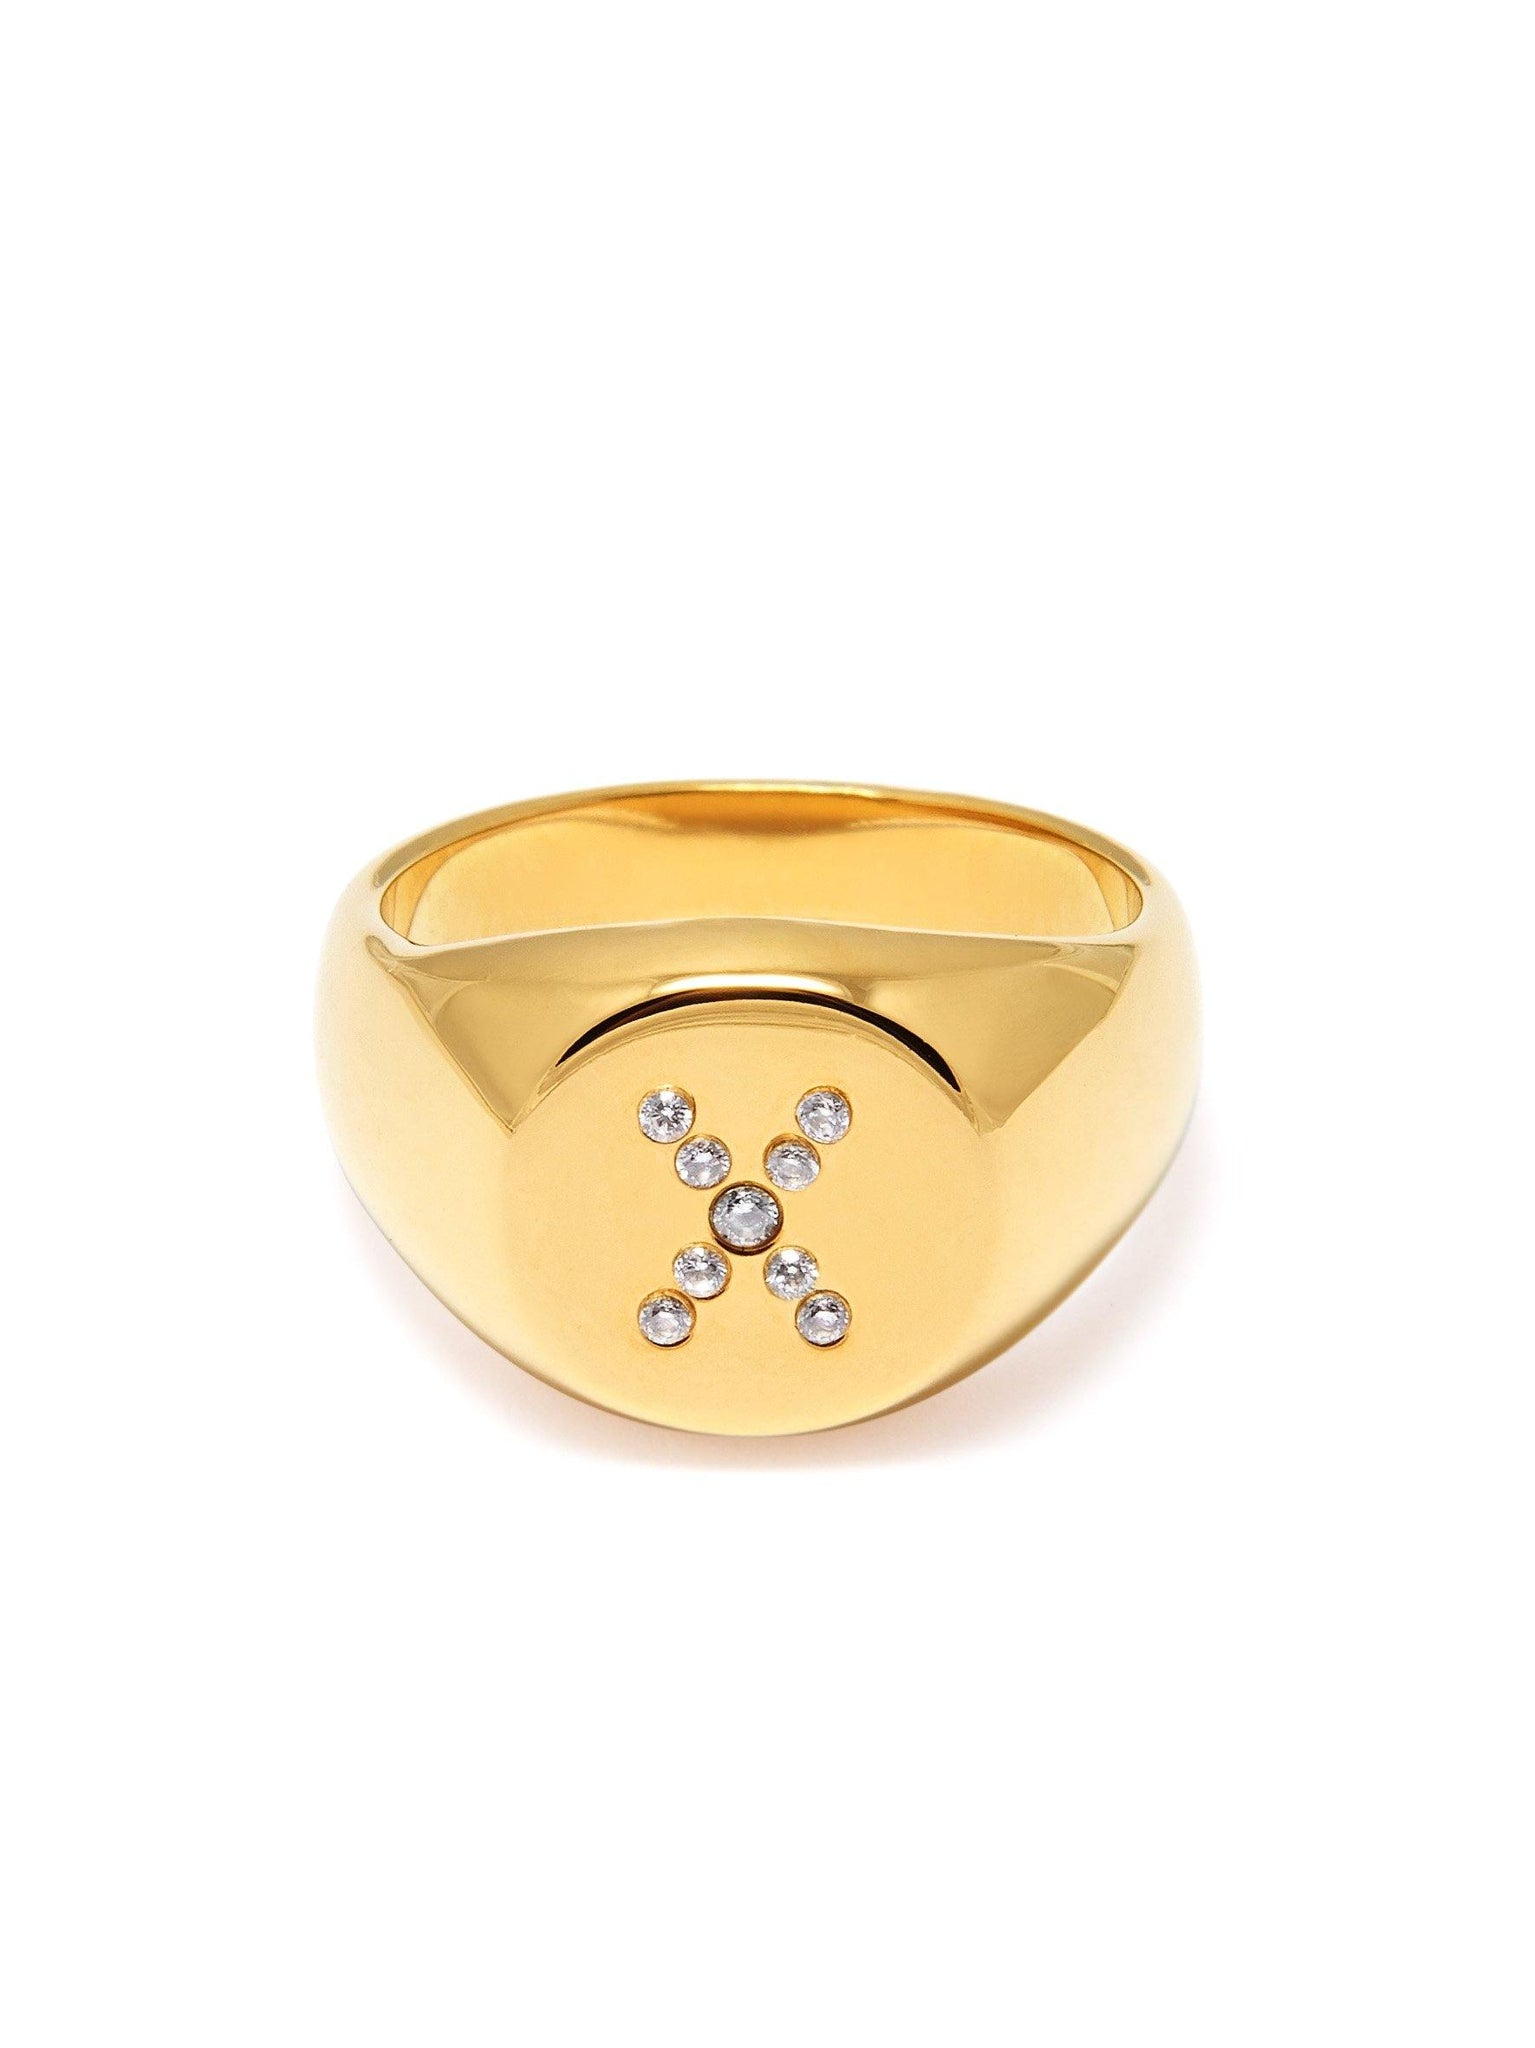 THE 10 YEAR ANNIVERSARY COLLECTION - Women's Limited Edition X Ring PRE-ORDER